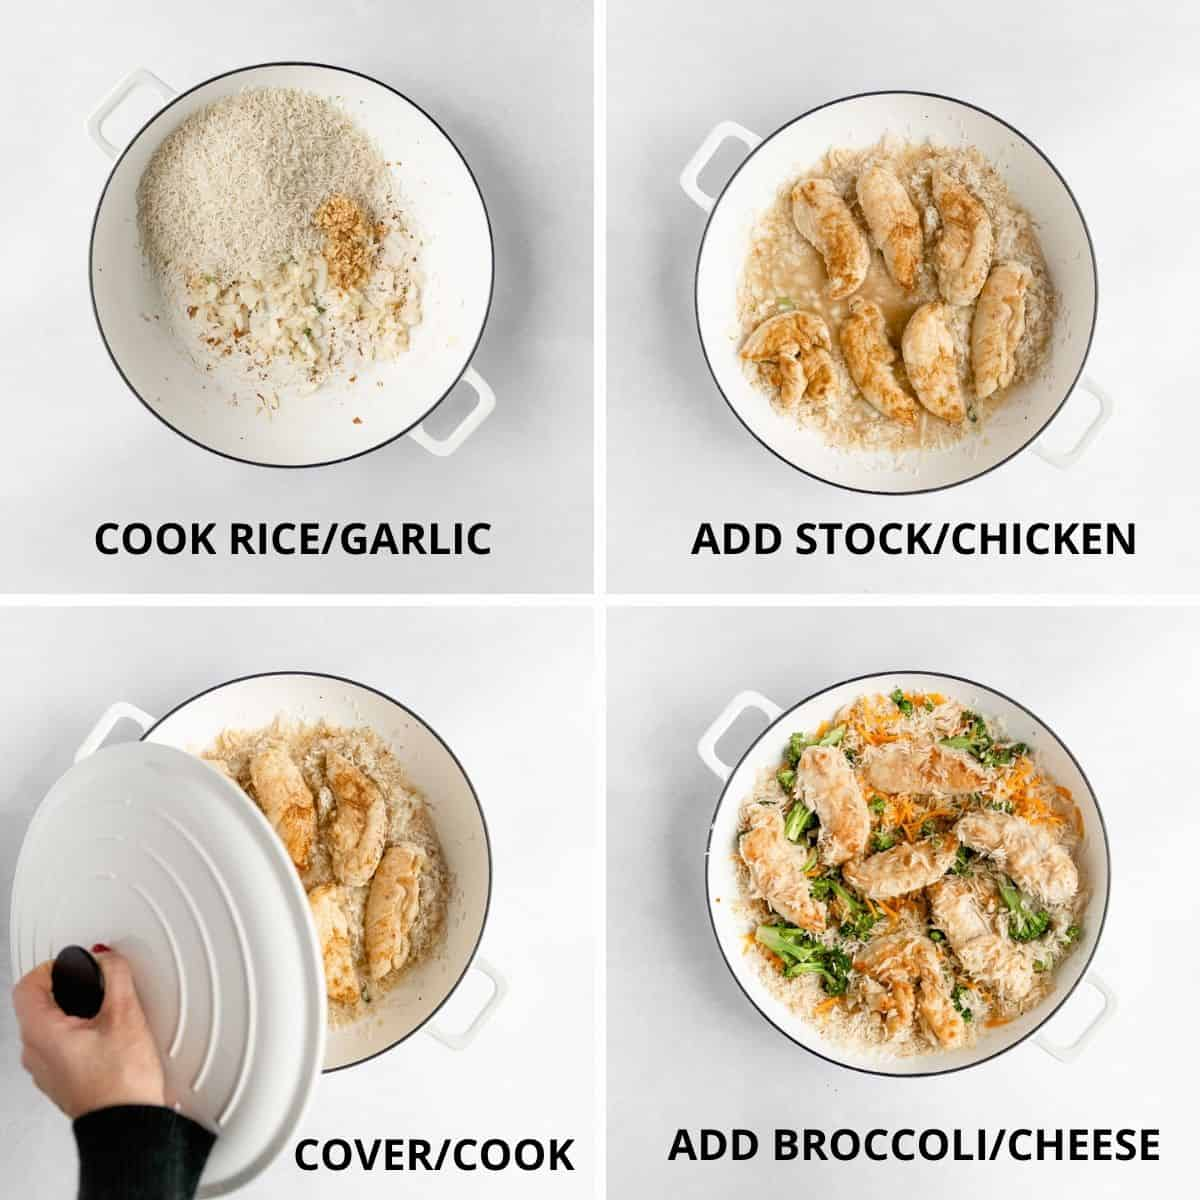 step by step photos of how to make the chicken and rice